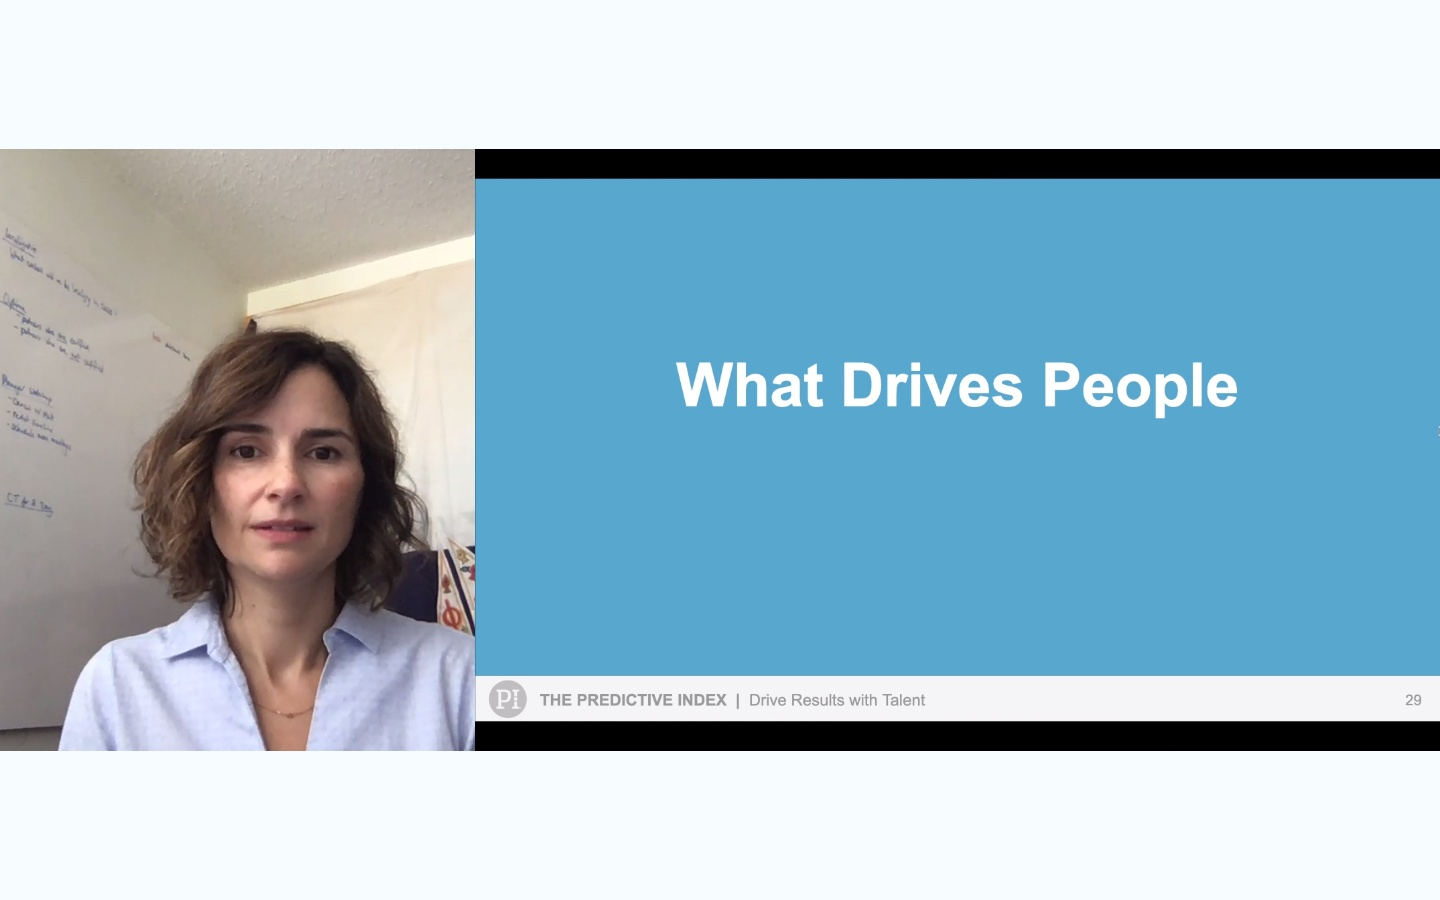 Drive Results with Talent Workshop - 4. What Drives People